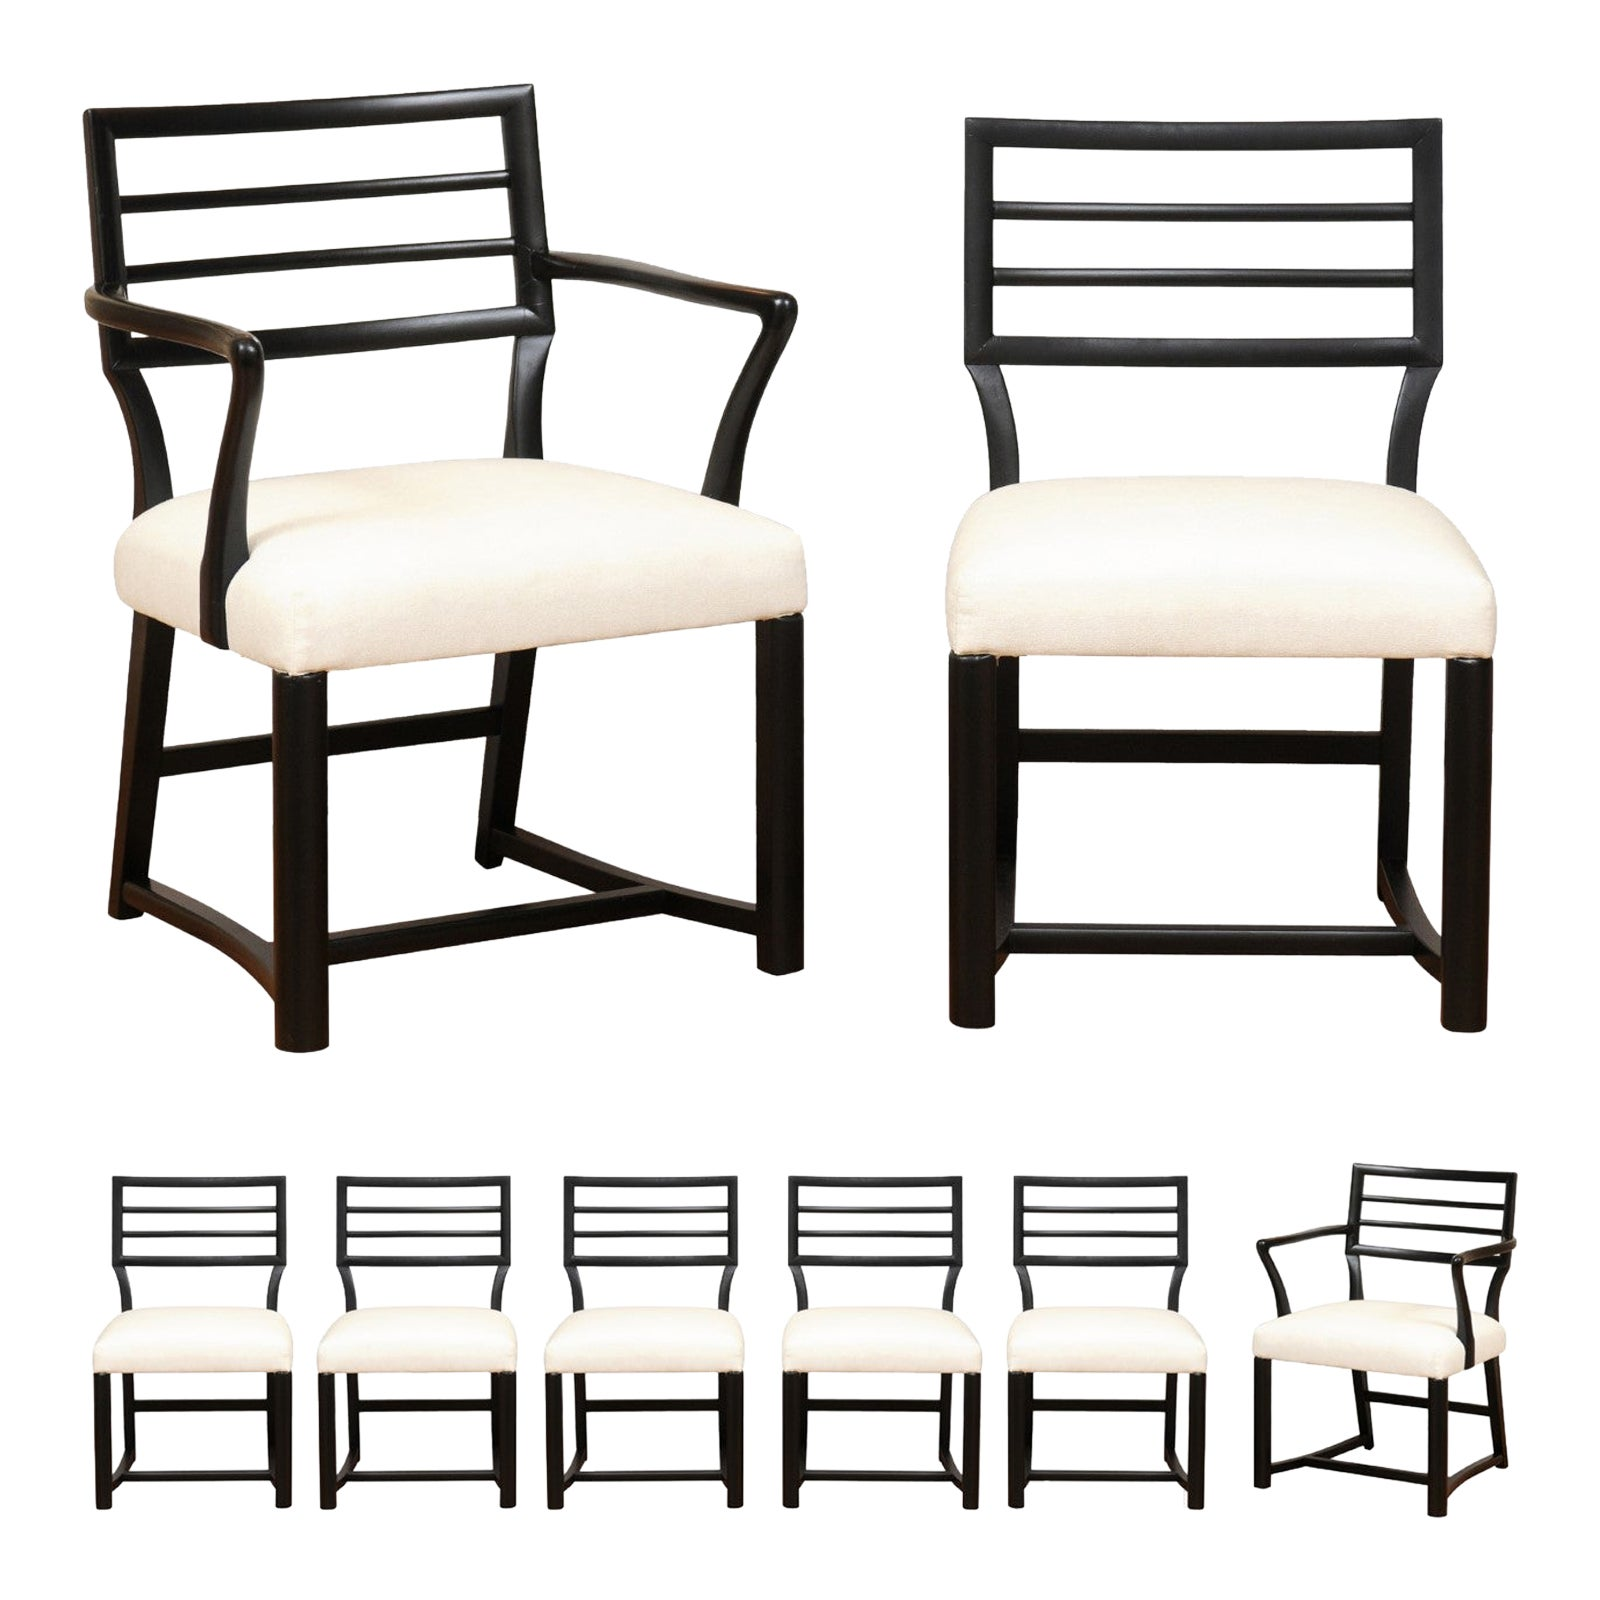 Spectacular Restored Set of 8 Modern Dining Chairs by Michael Taylor, circa 1957